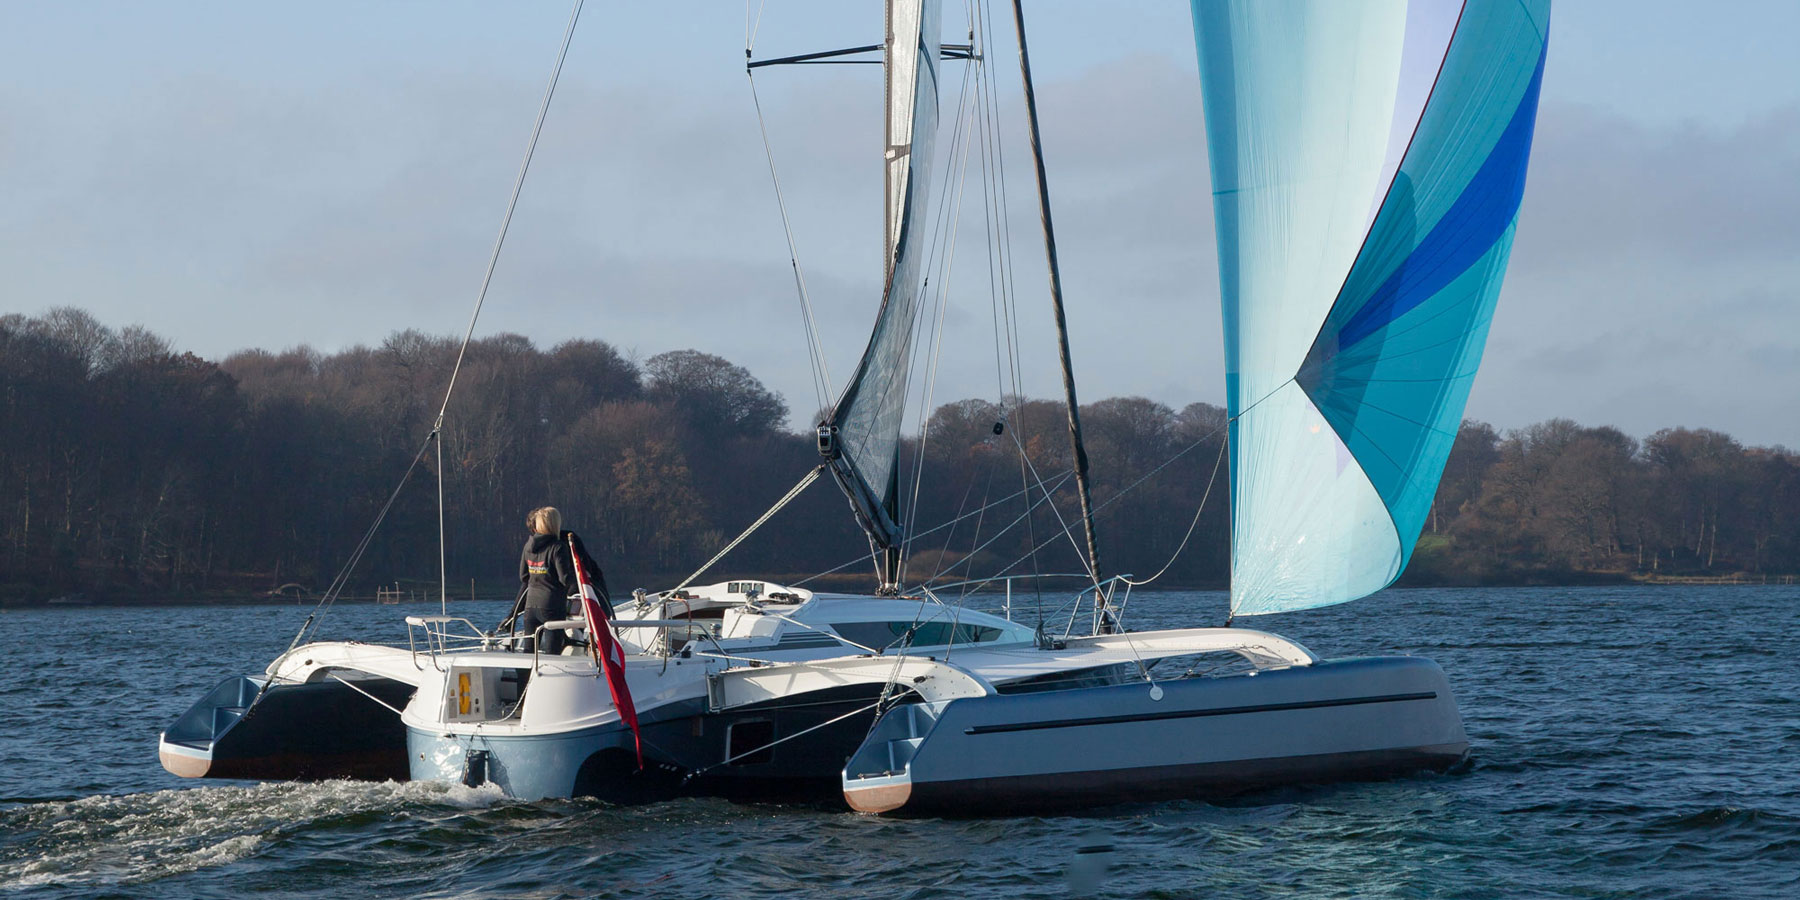 Dragonfly 32 Evolution trimaran sailing with gennaker